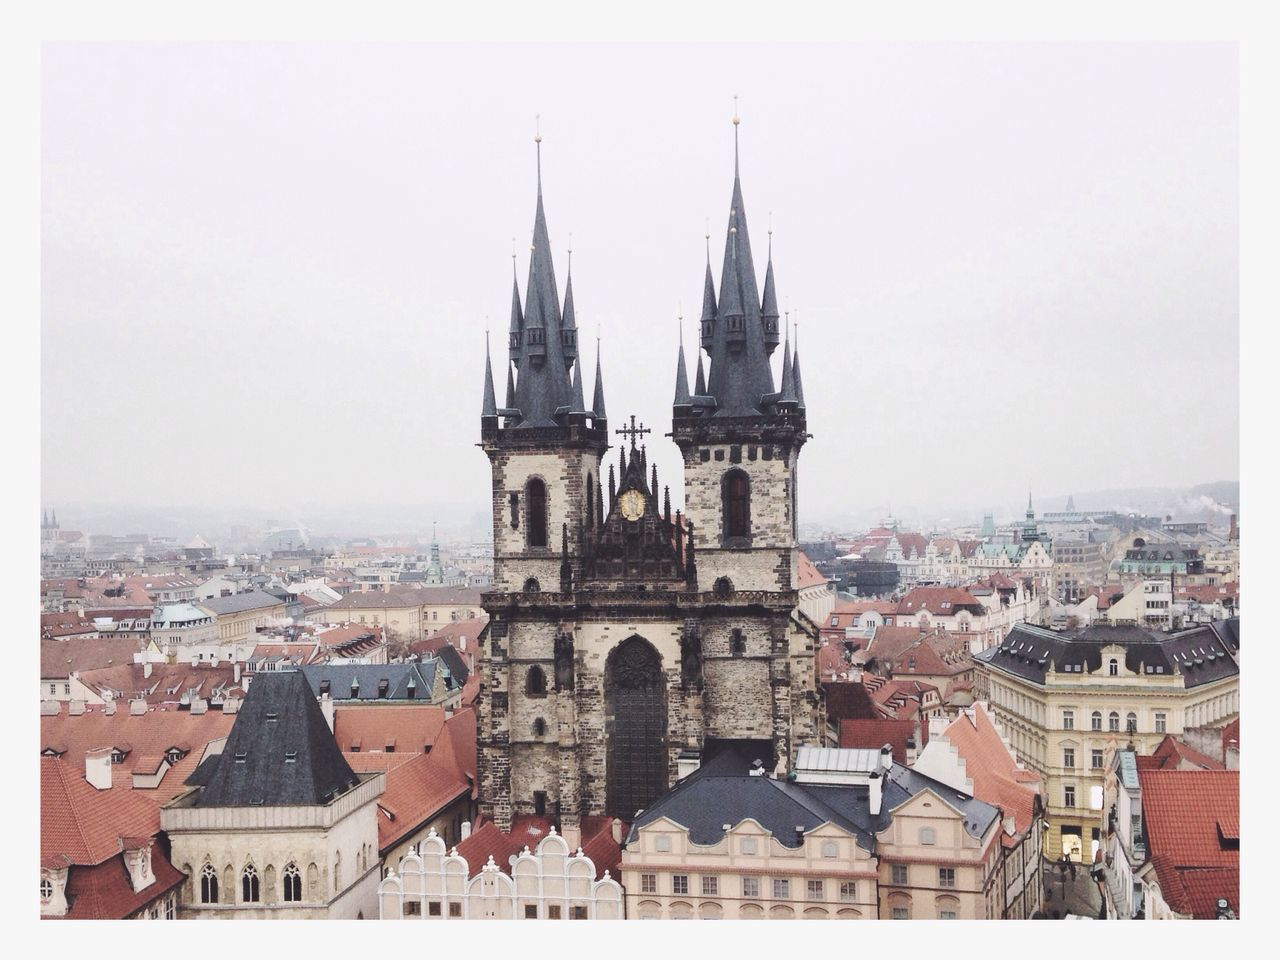 Architecture Religion Travel Destinations EyeEm Best Shots Tower Prague Praha Cityscape Architecture AMPt_community Great Atmosphere Shootermag Streetphotography Europe Vacations